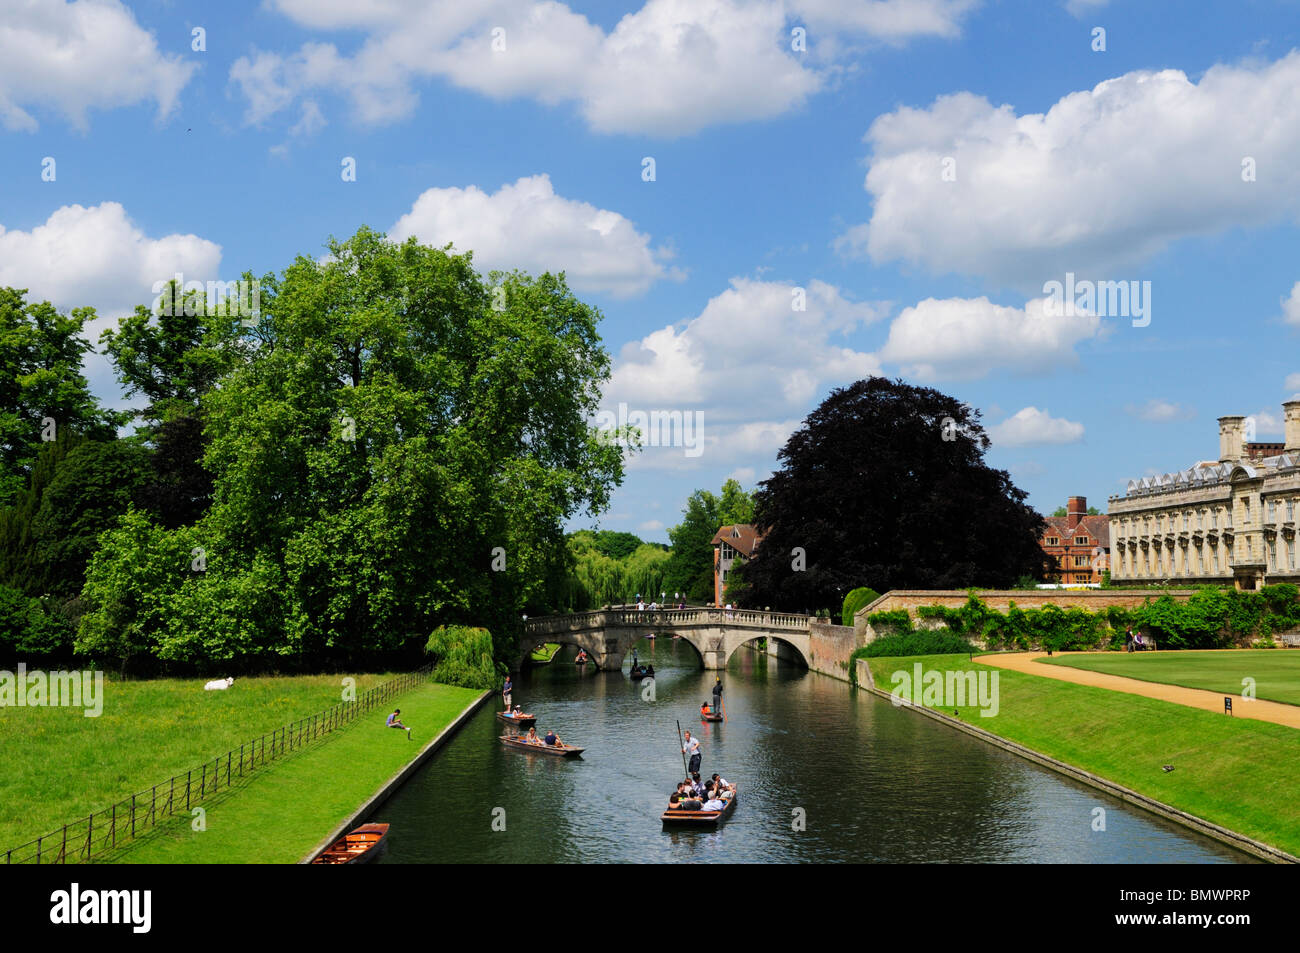 Punting on the River Cam from Kings Bridge looking towards Clare Bridge, Cambridge, England, UK - Stock Image